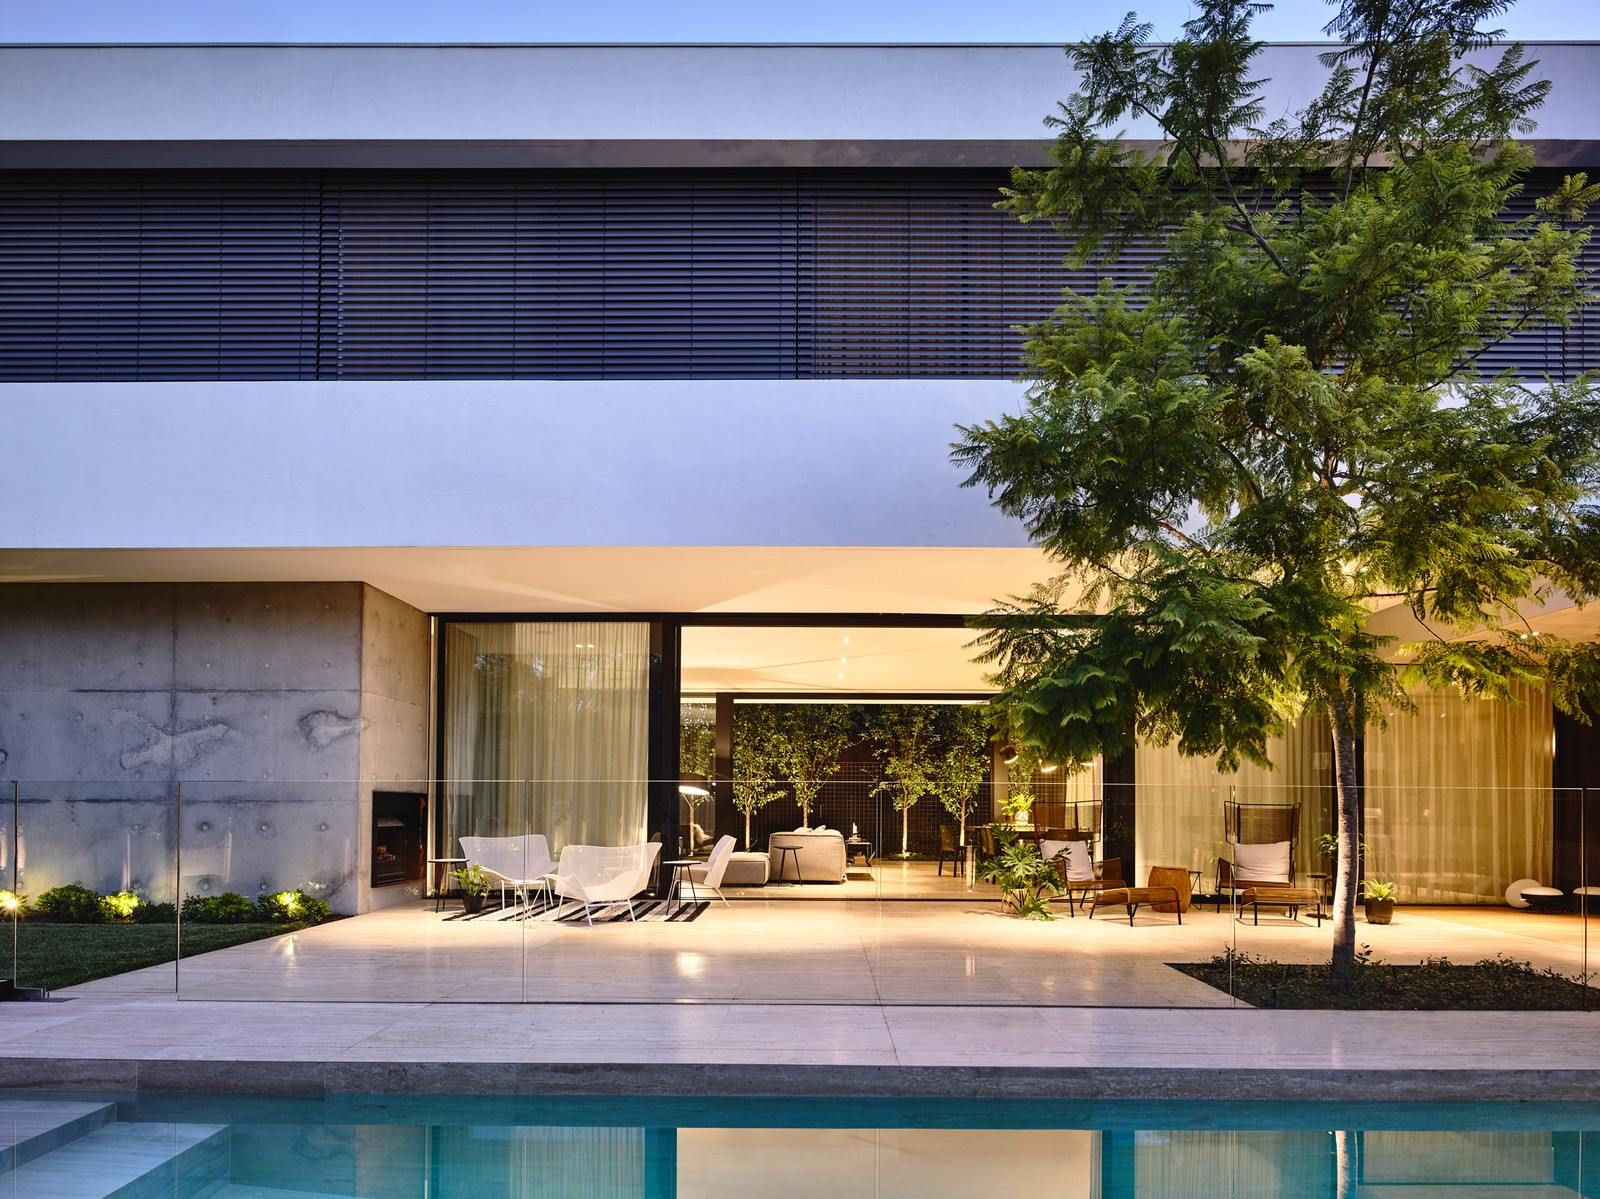 Toorak Residence is a private residence designed